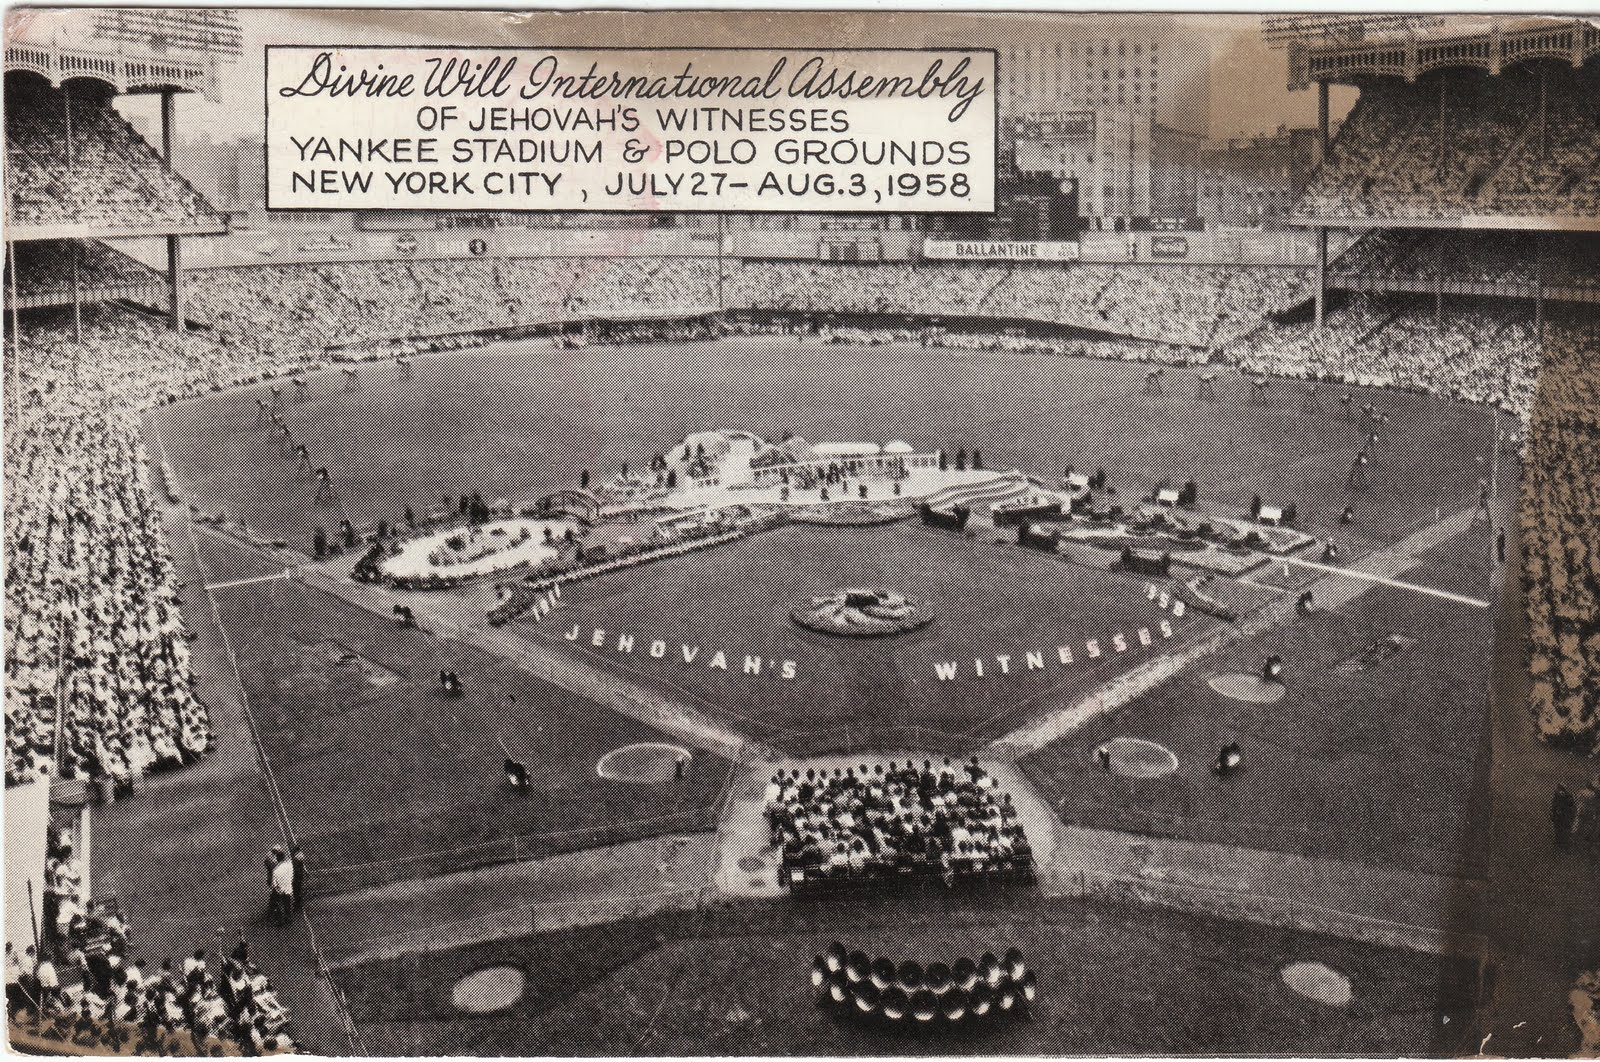 The 1958 convention was split between Yankee Stadium and the nearby